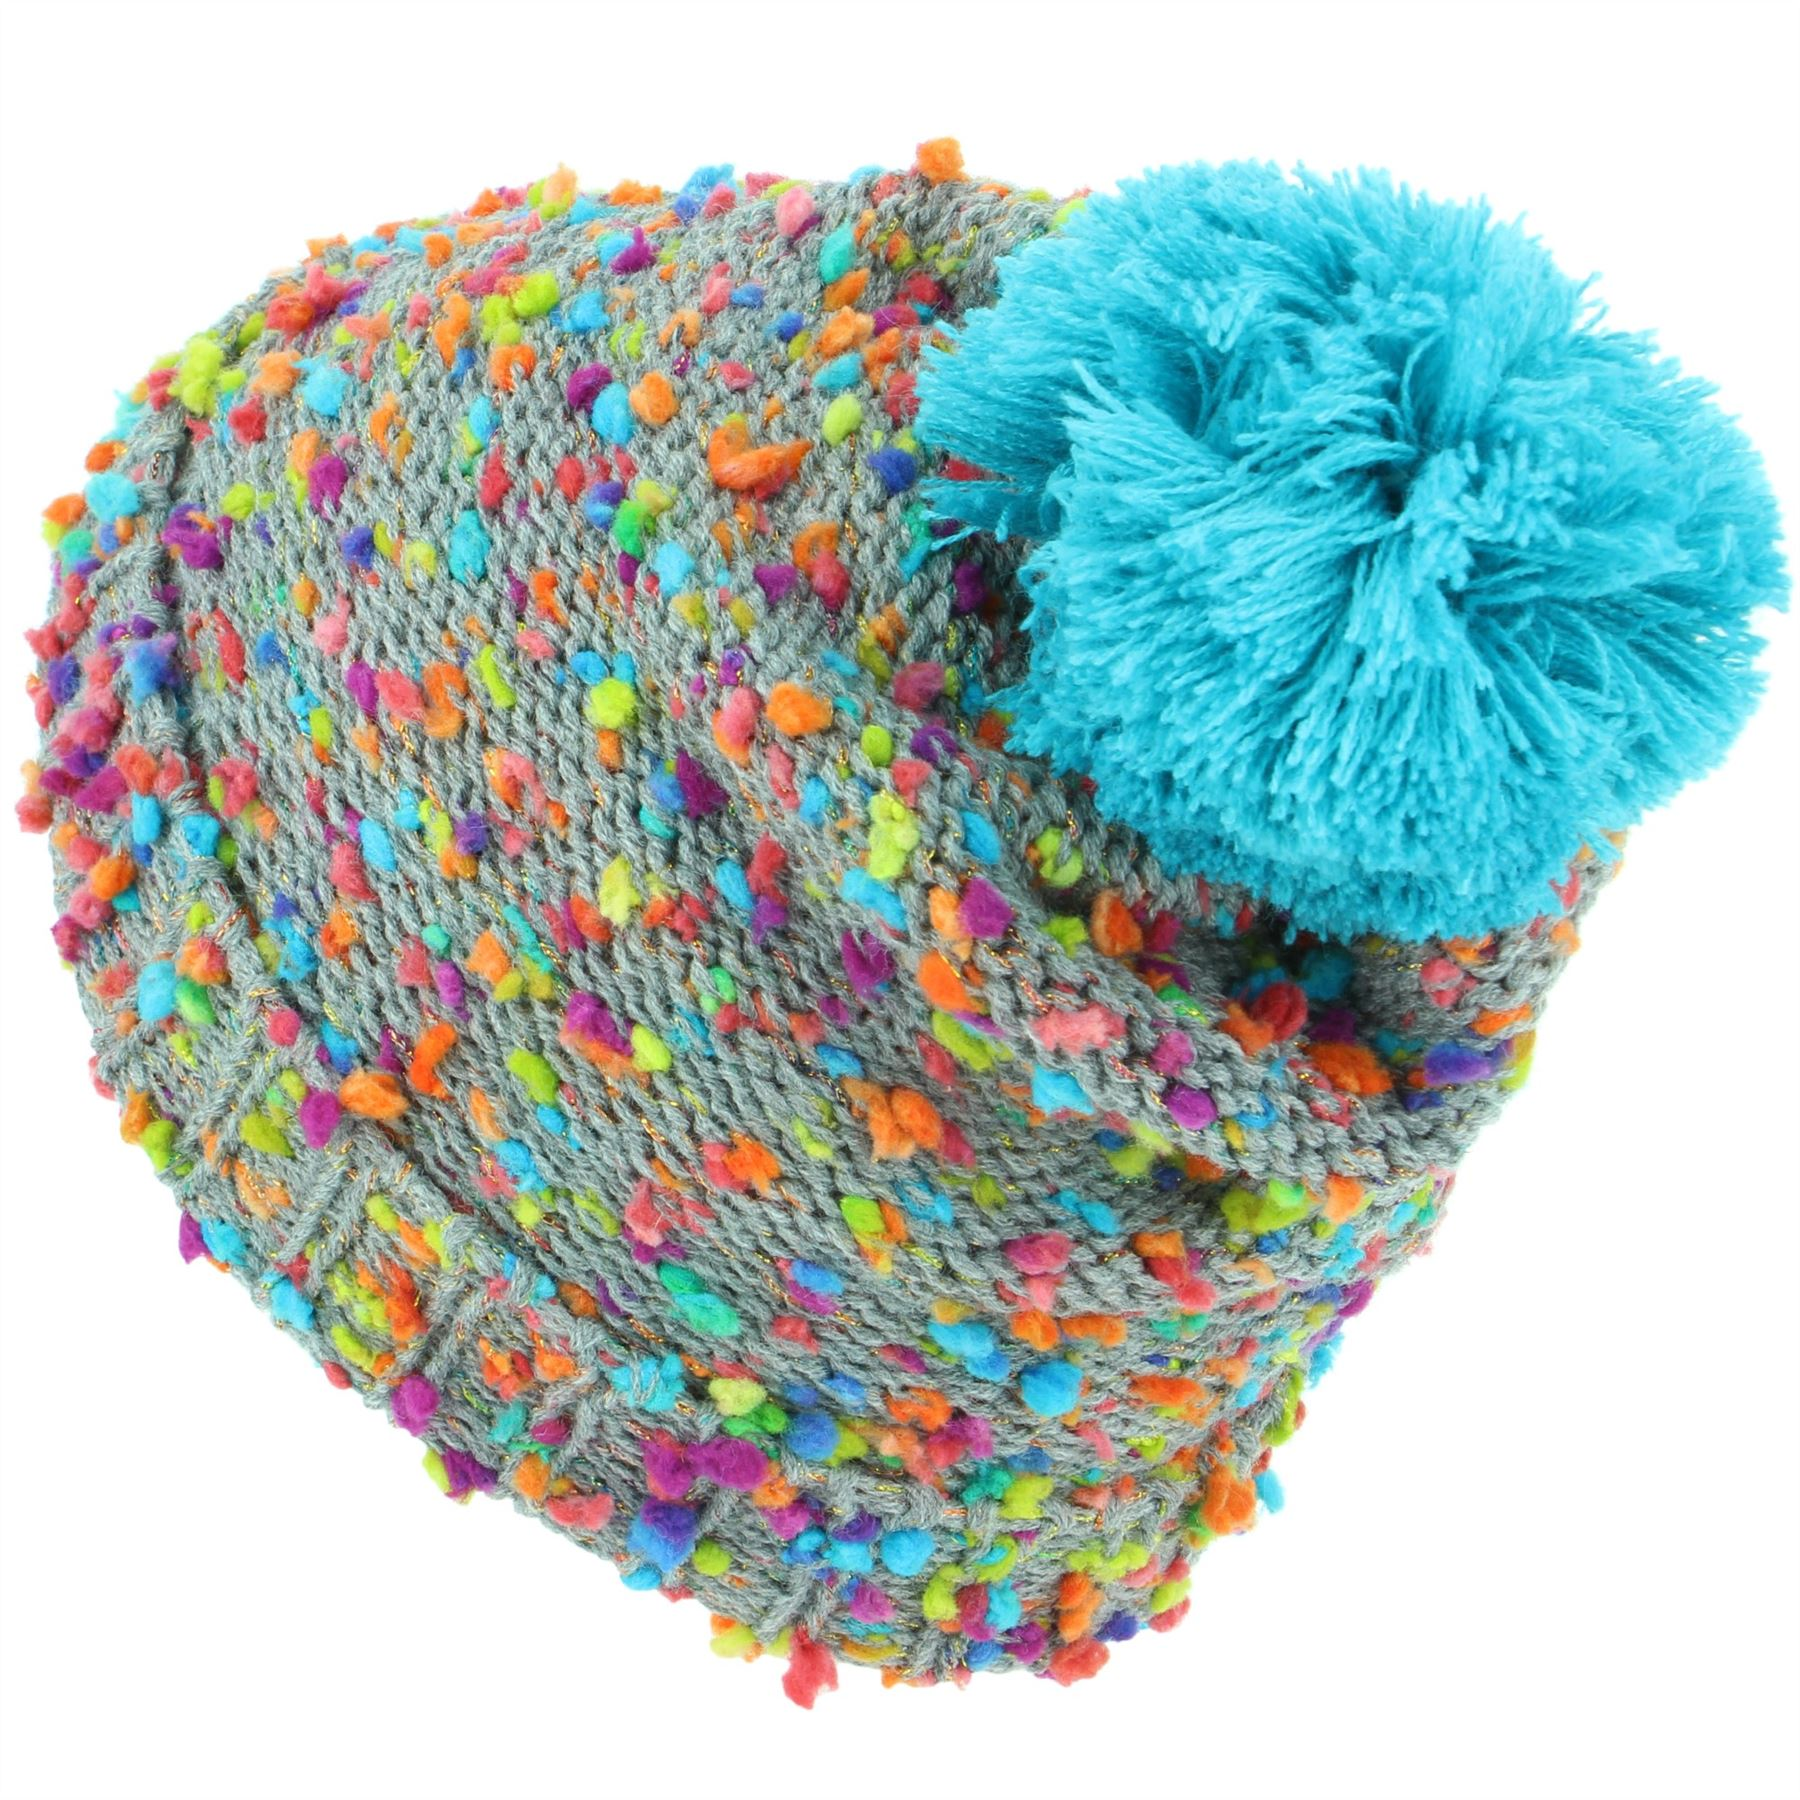 28c5067525d6a6 Beanie Hat Cap Warm Winter RAINBOW FLECK Childrens Soft Chunky Bobble  Hawkins. Hover to zoom